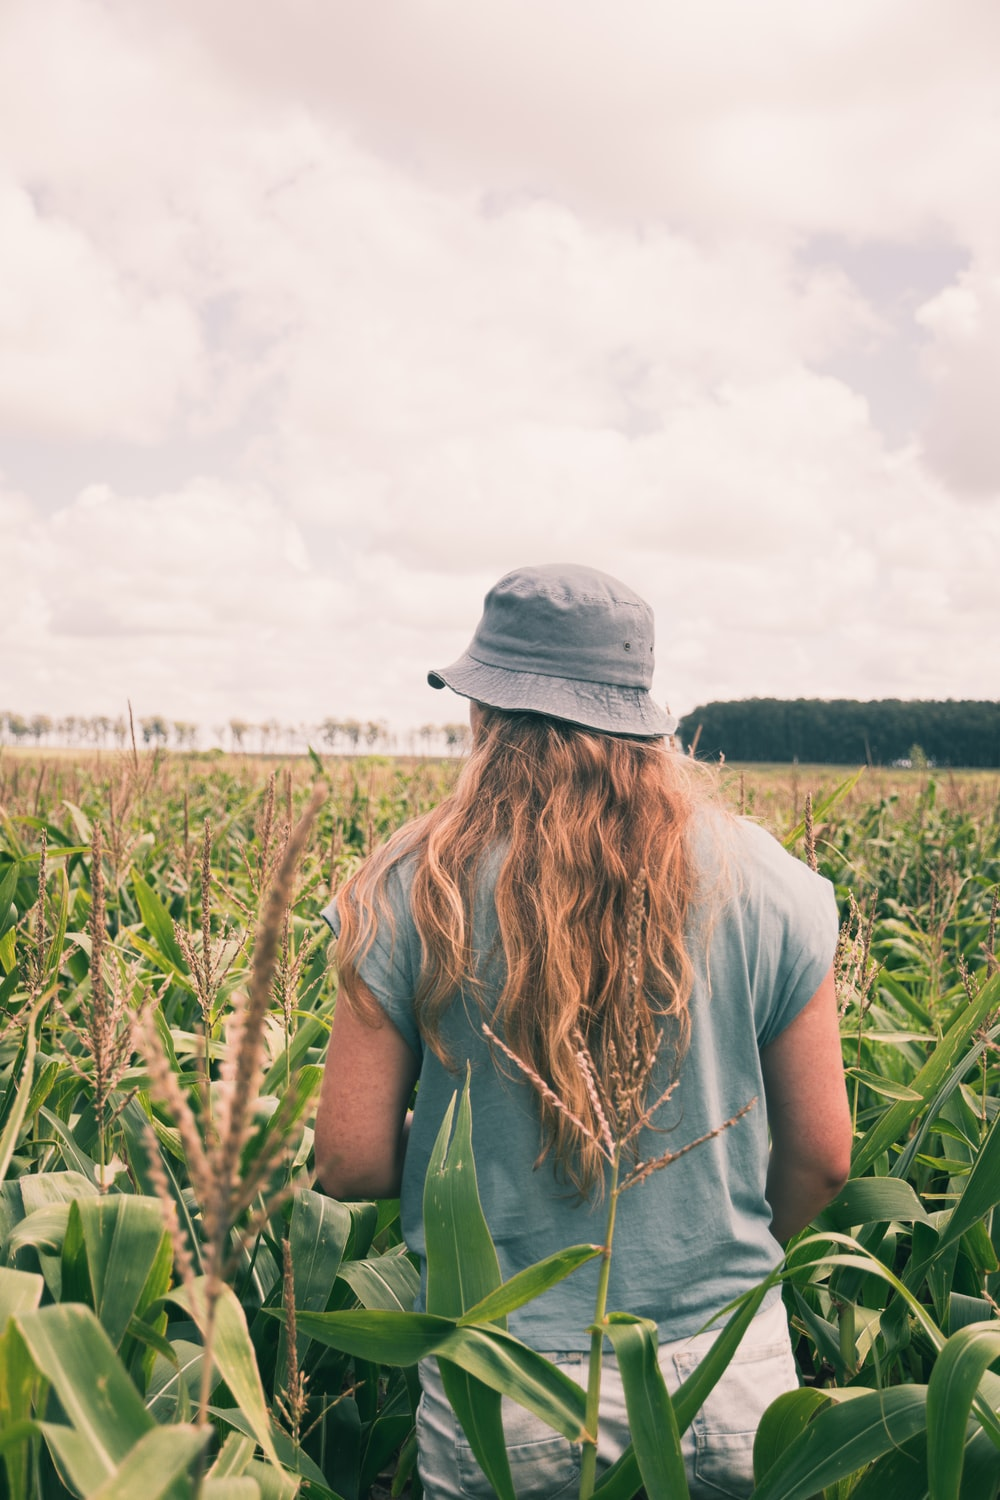 woman in grey hat standing on green grass field during daytime